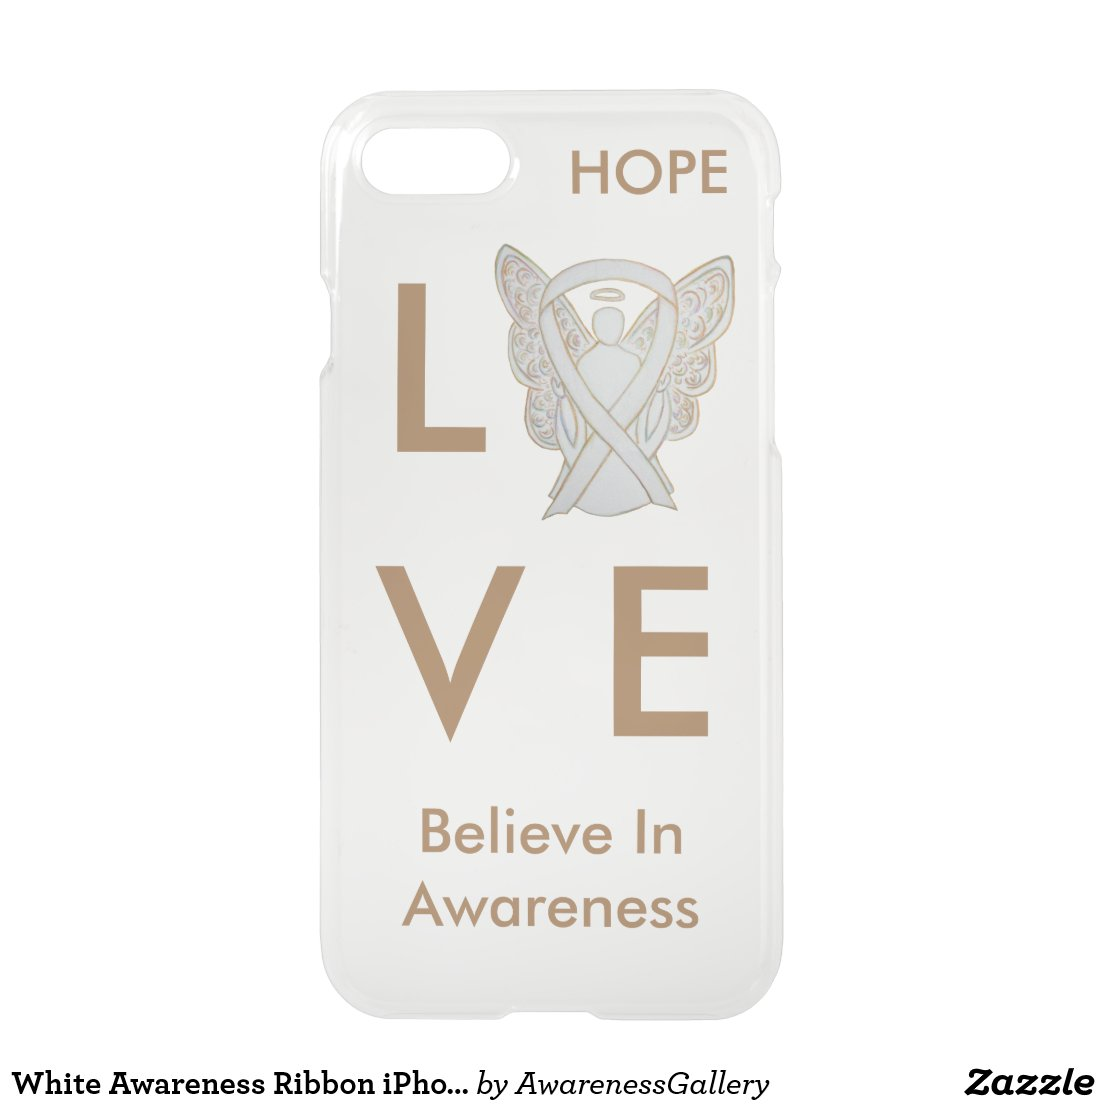 Love Believe in Awareness - White Awareness Ribbon iPhone 7 Child Adoption Custom Angel Case